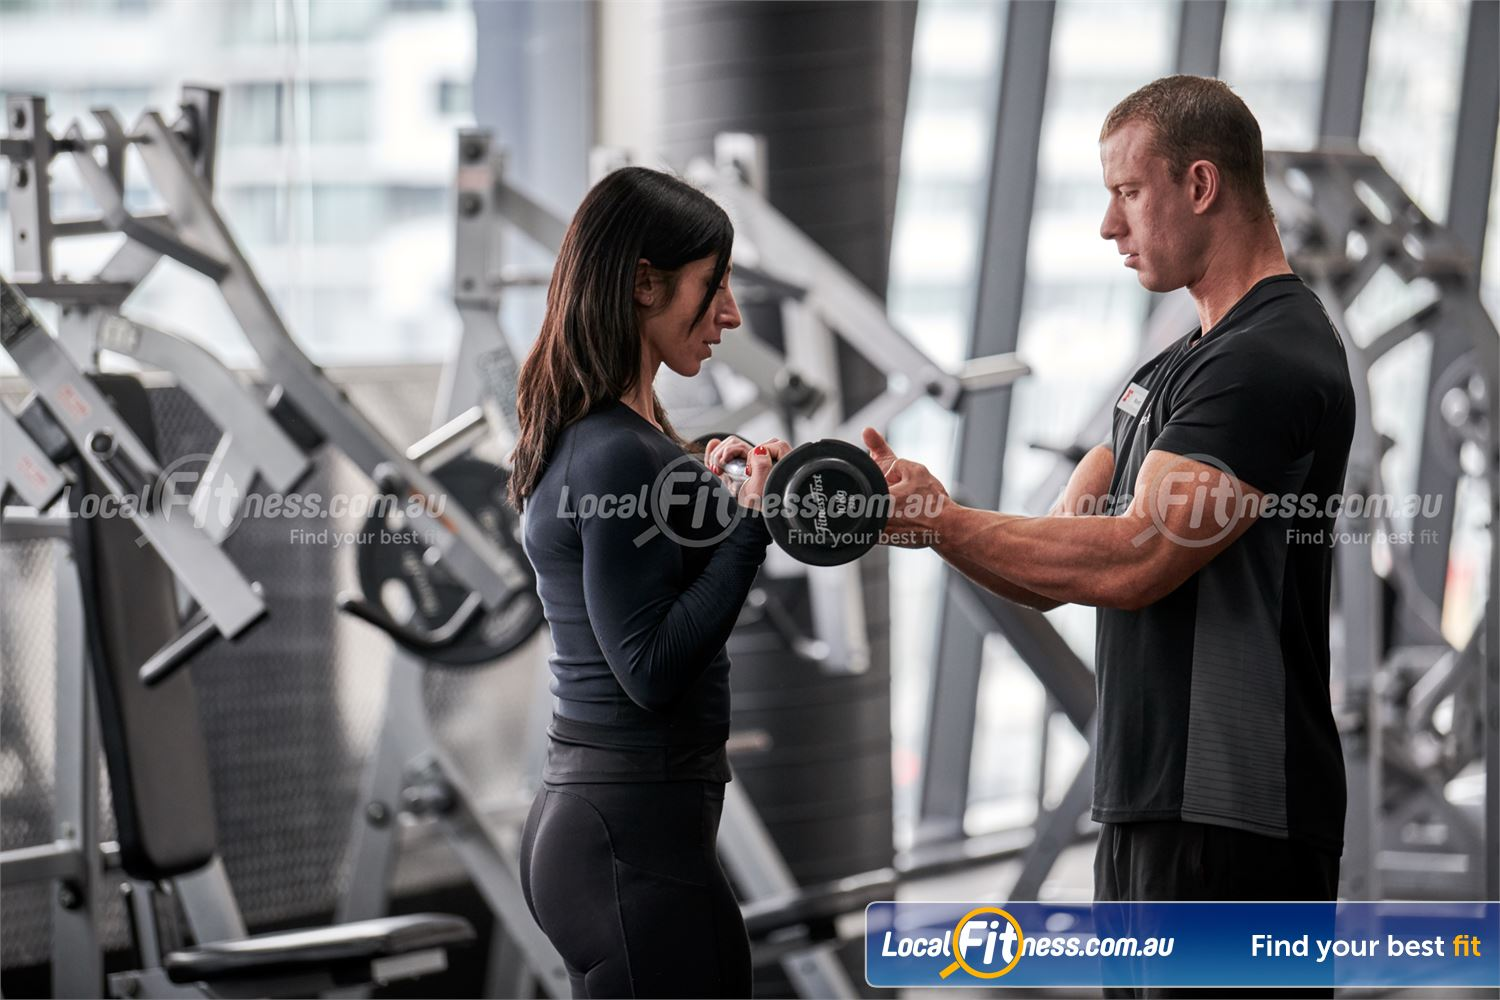 Fitness First Canberra City Near Parkes Our free-weights area is fully equipped with dumbbells barbells and more.